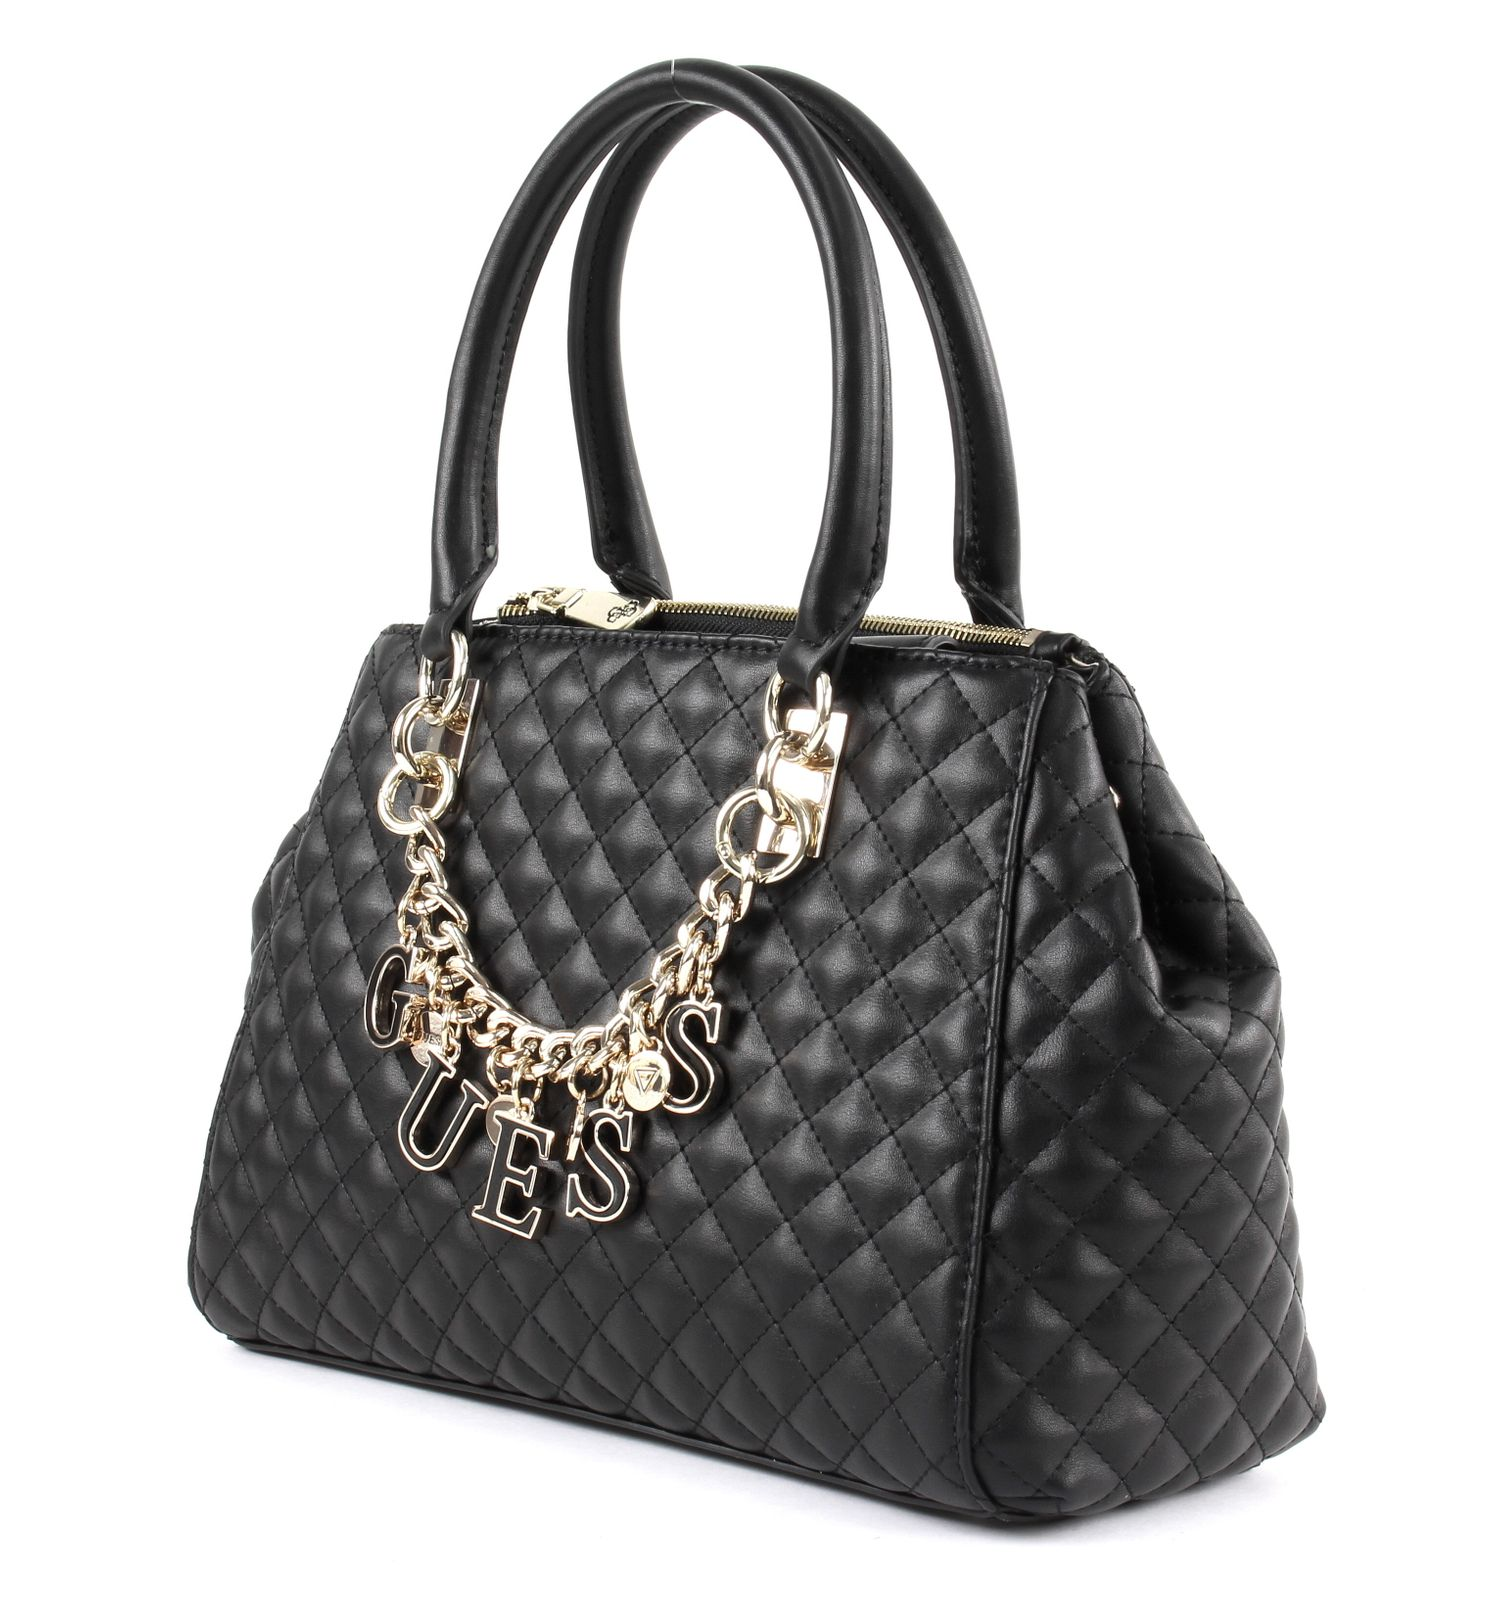 Guess Guess Passion Status Satchel Black in schwarz